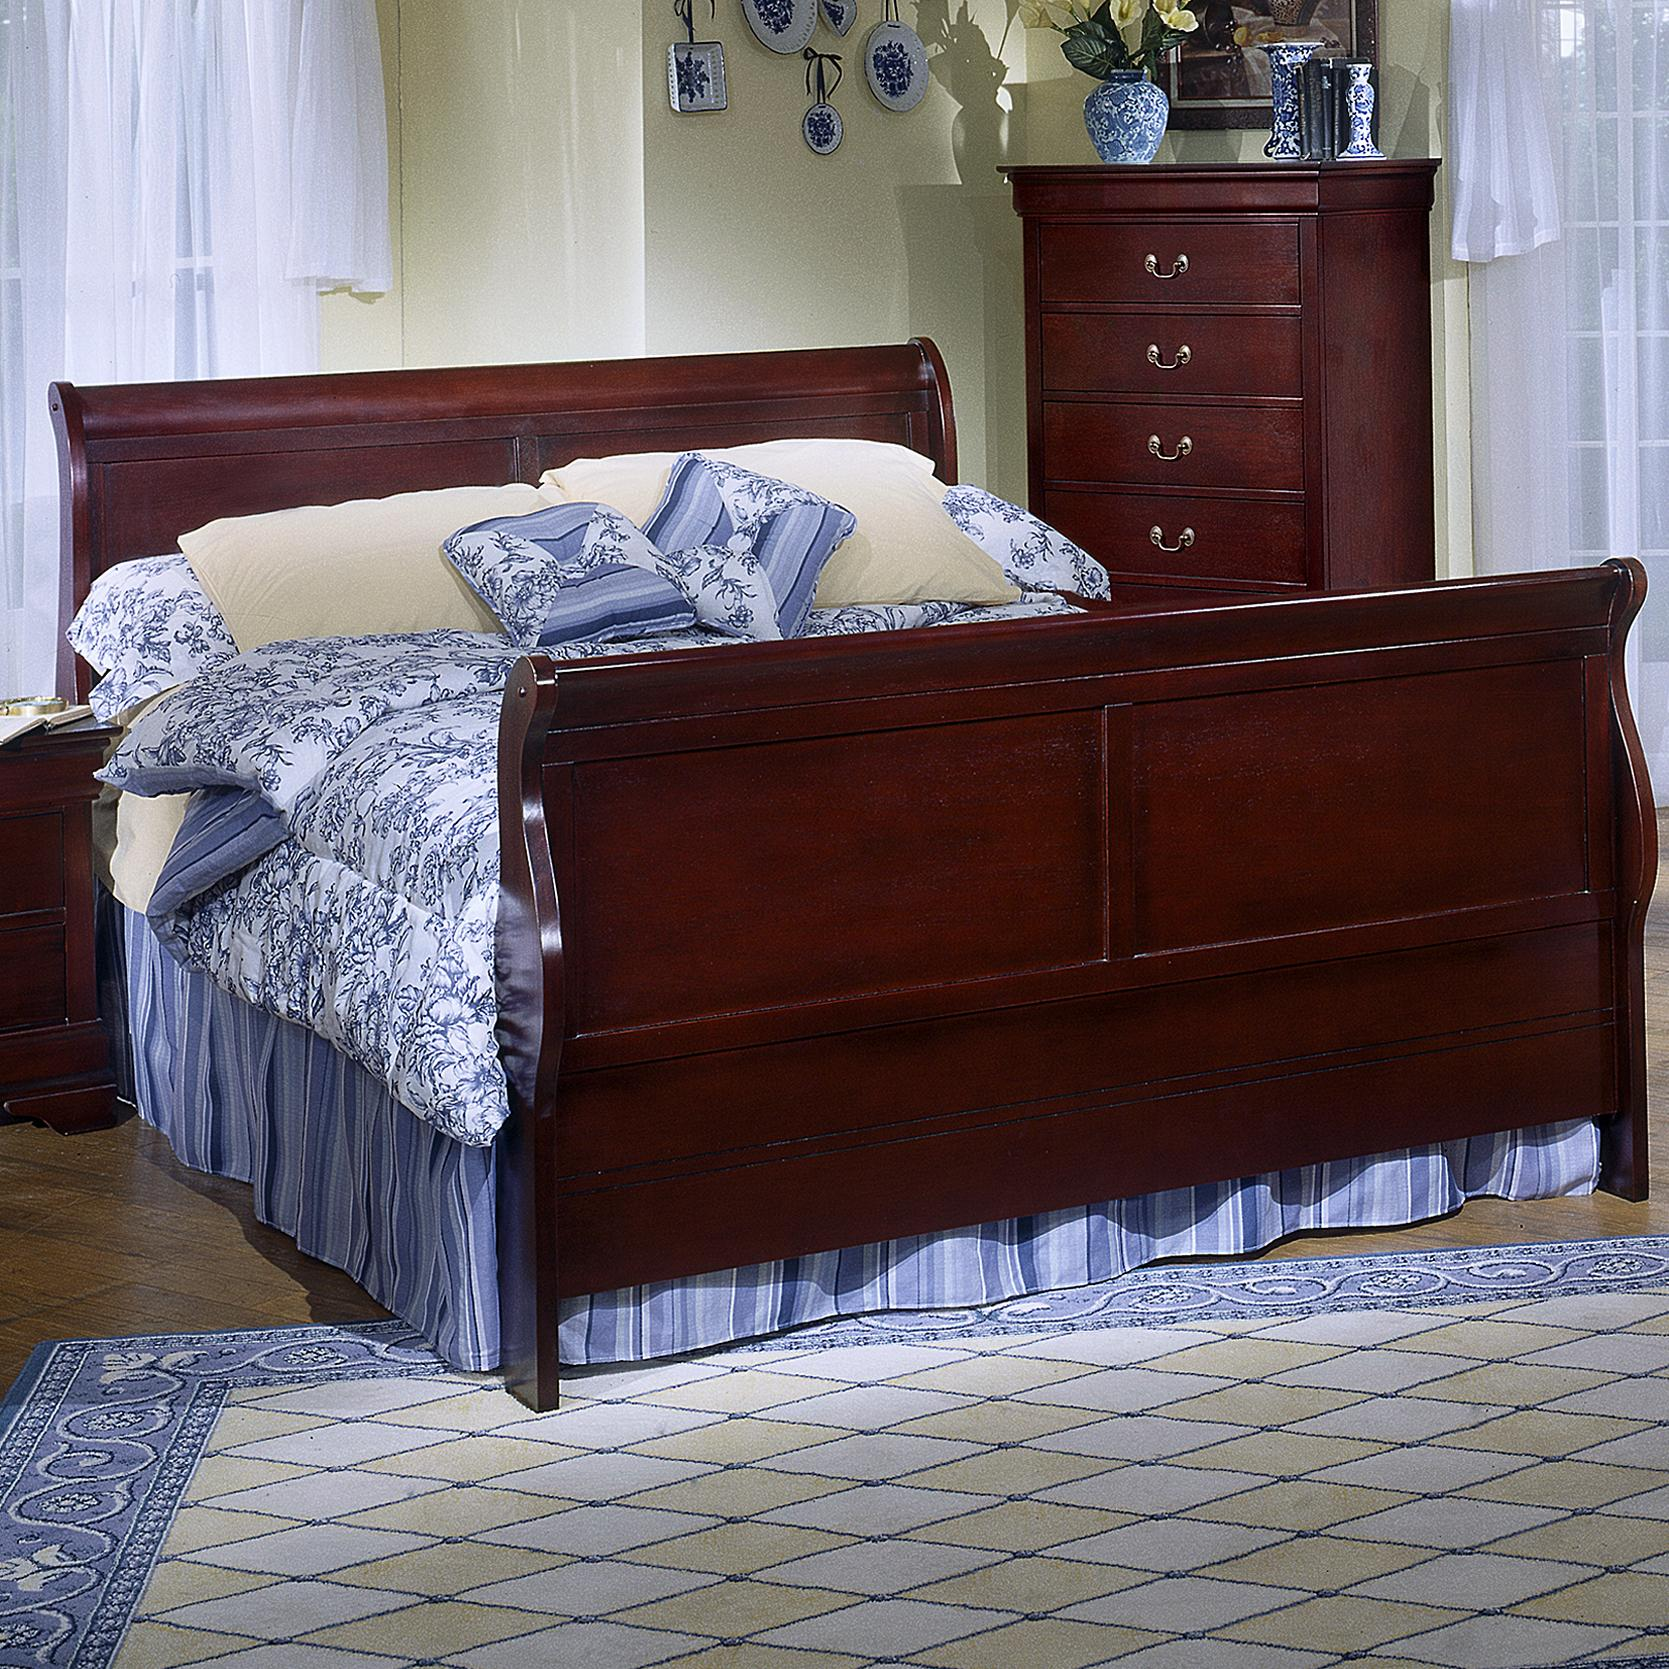 Lifestyle 5933 Full Sleigh Panel Bed - Item Number: C5933K-FSA-XXCH+FXP-XXCH